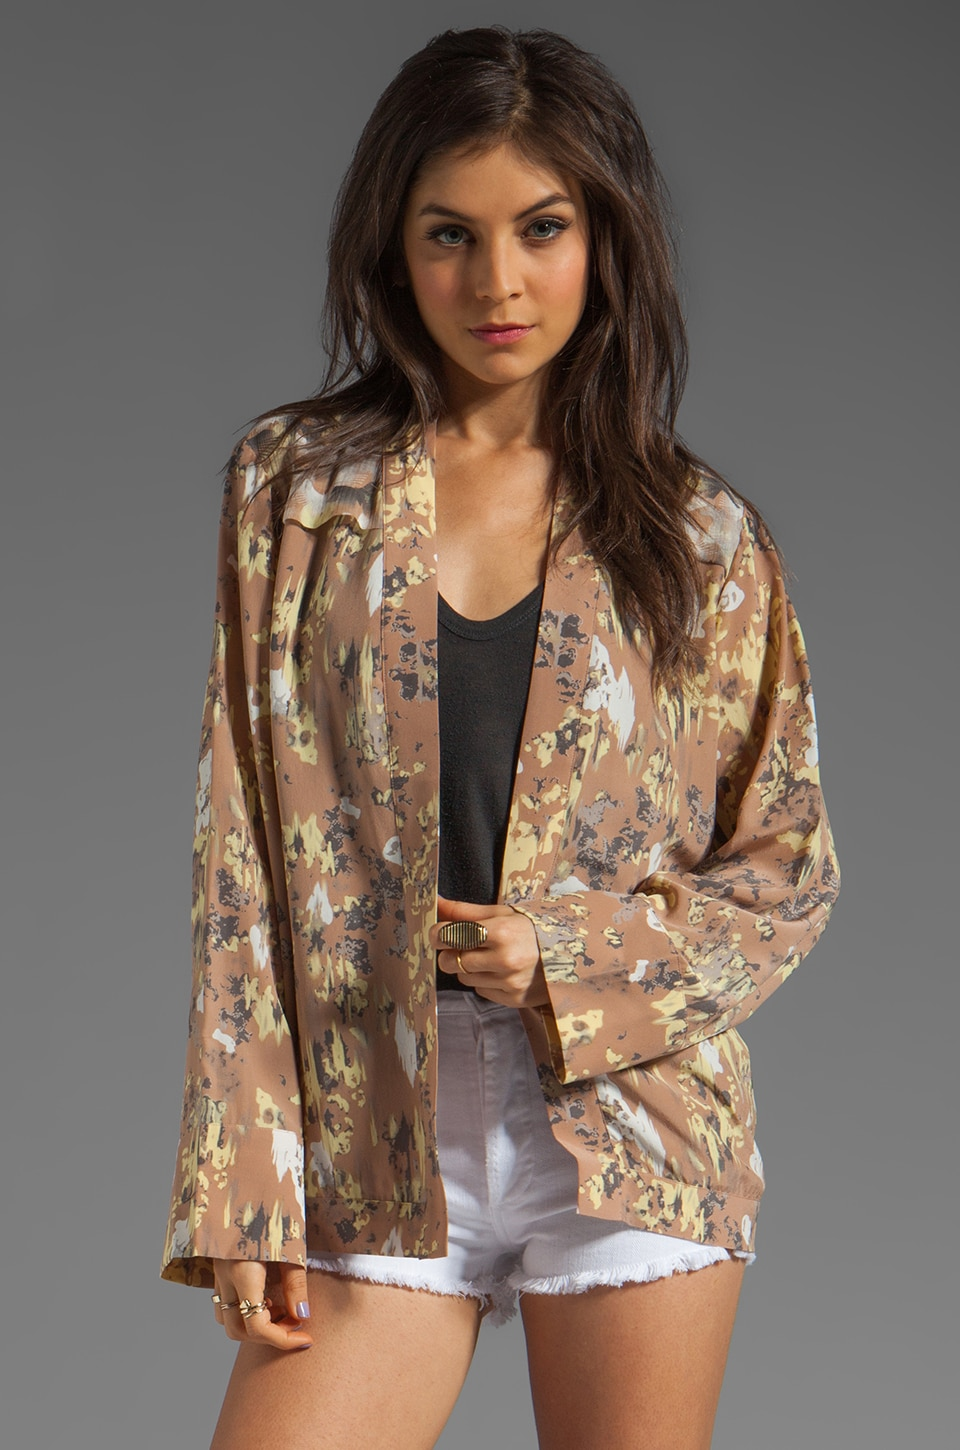 Winter Kate Gretel Bed Jacket in Identity Latte/Butterflies Latte